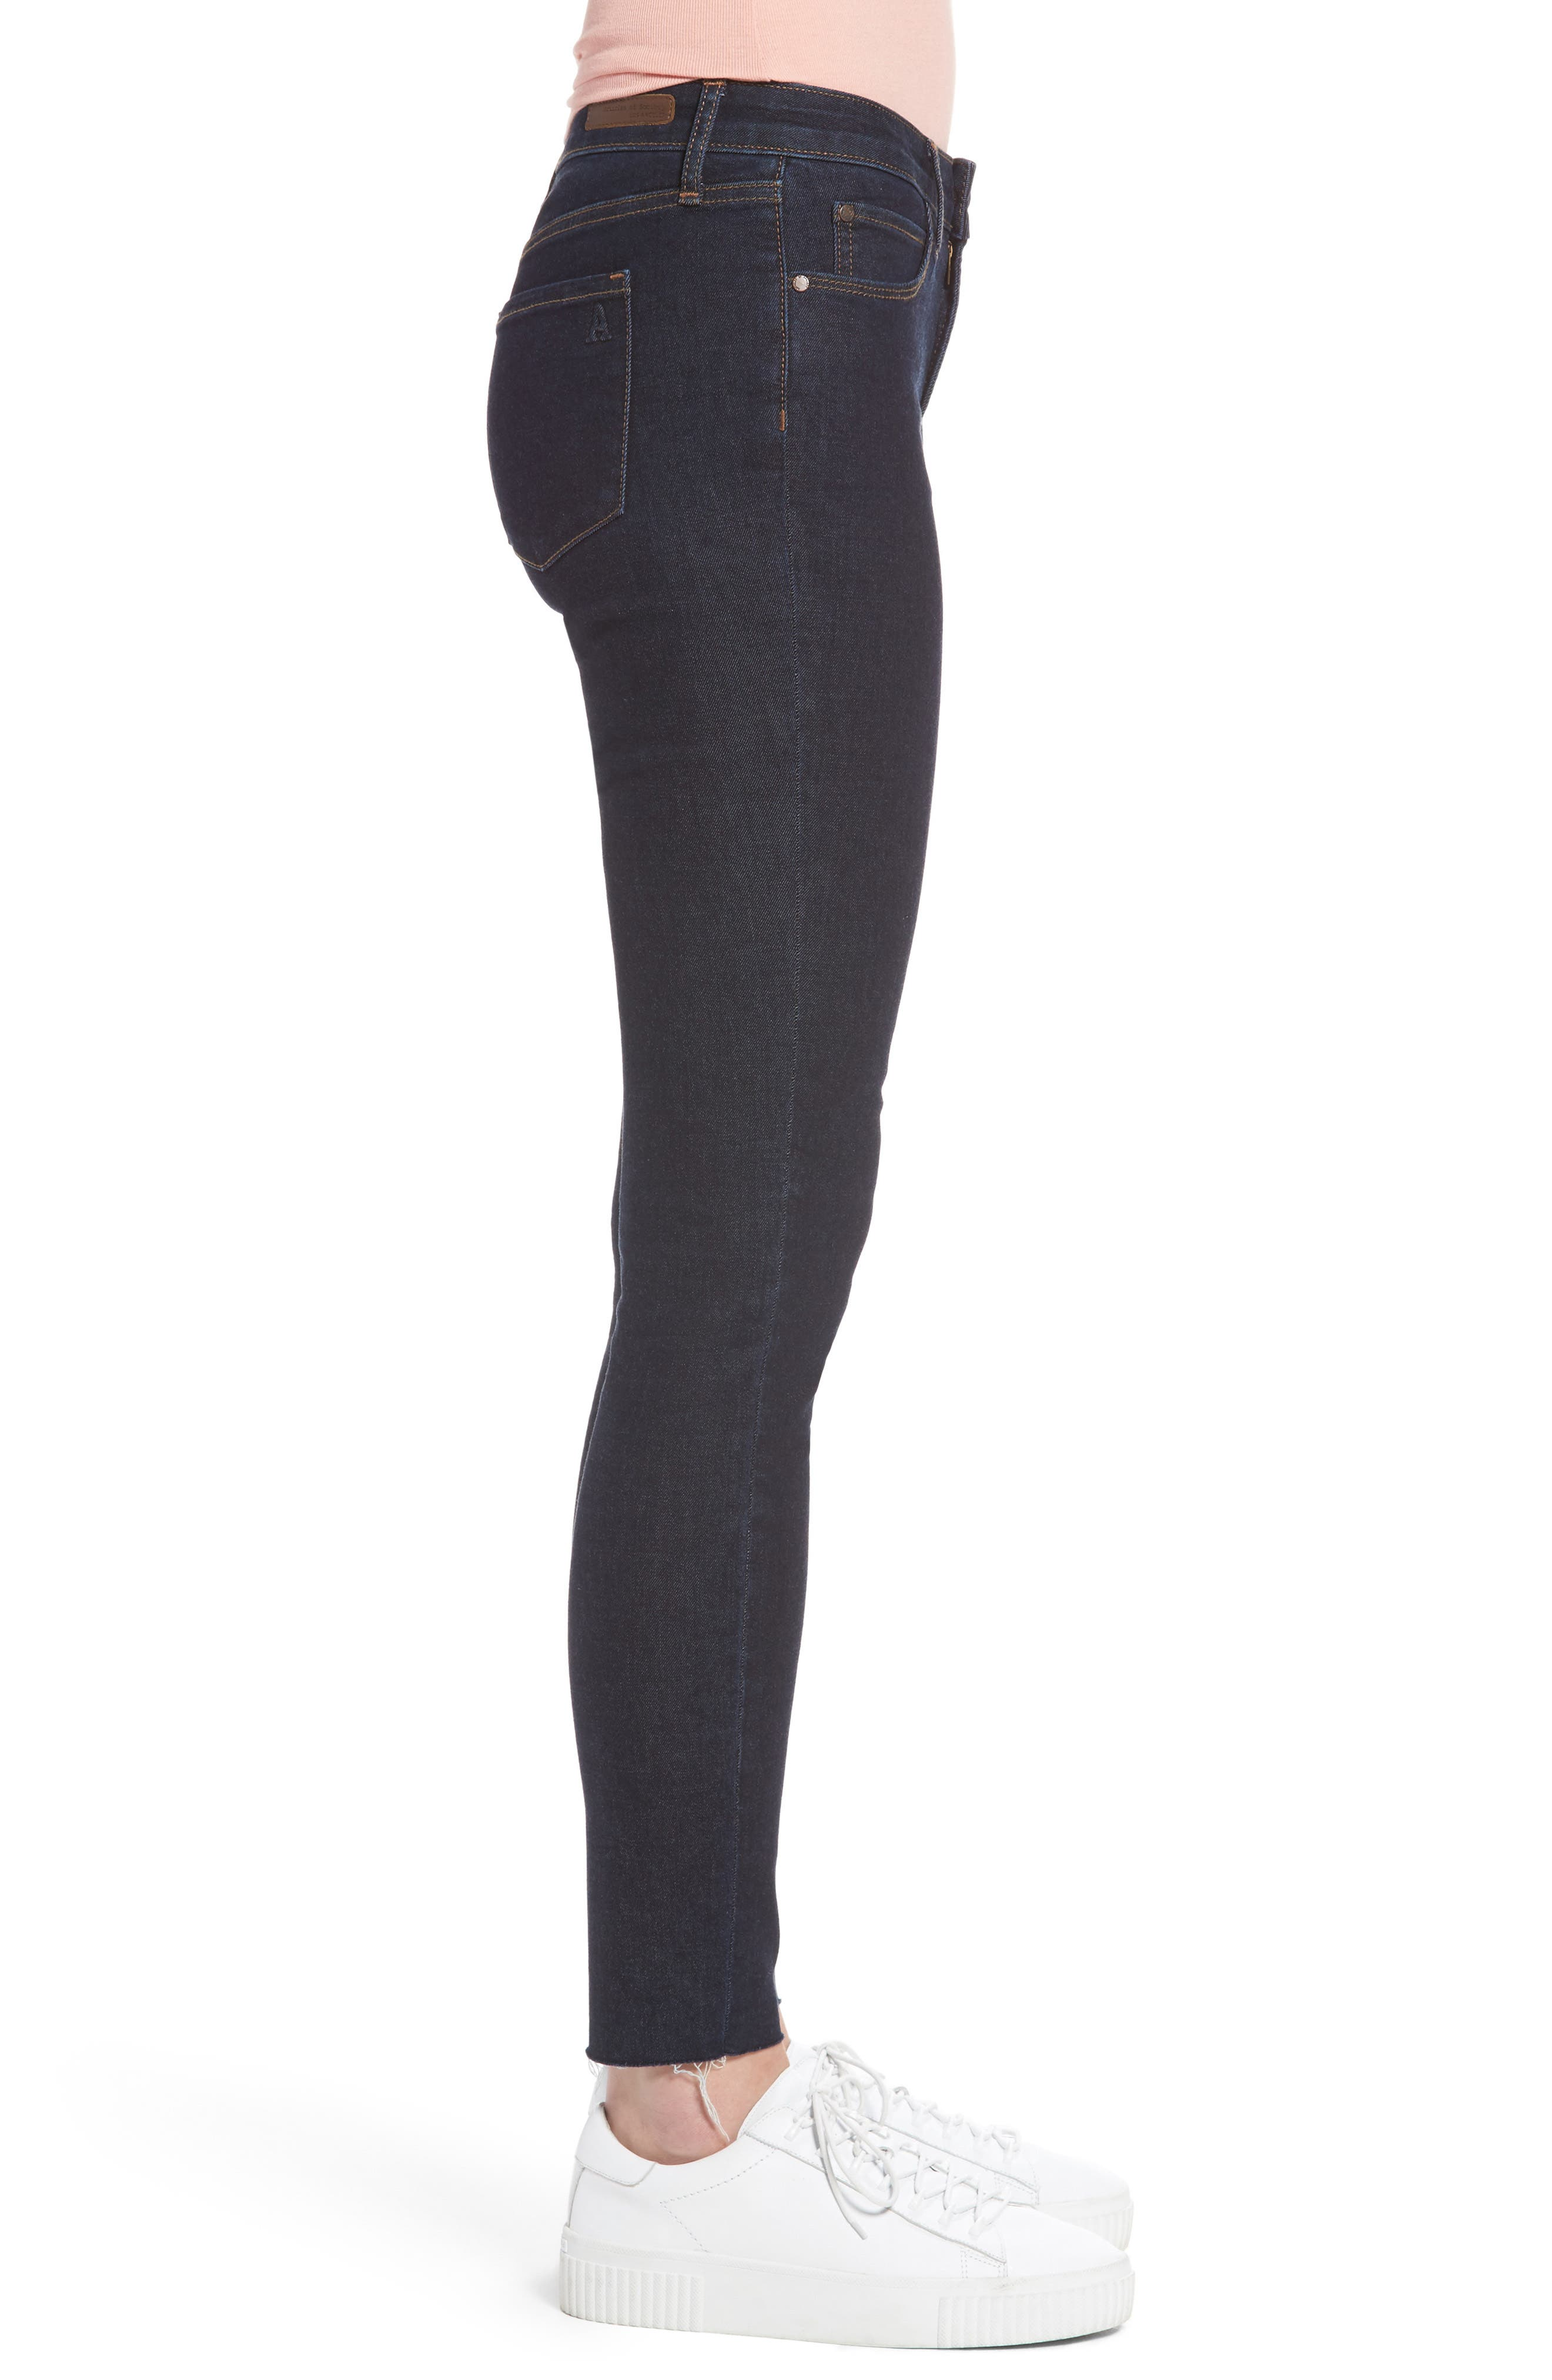 Sarah Ankle Skinny Jeans,                             Alternate thumbnail 3, color,                             495